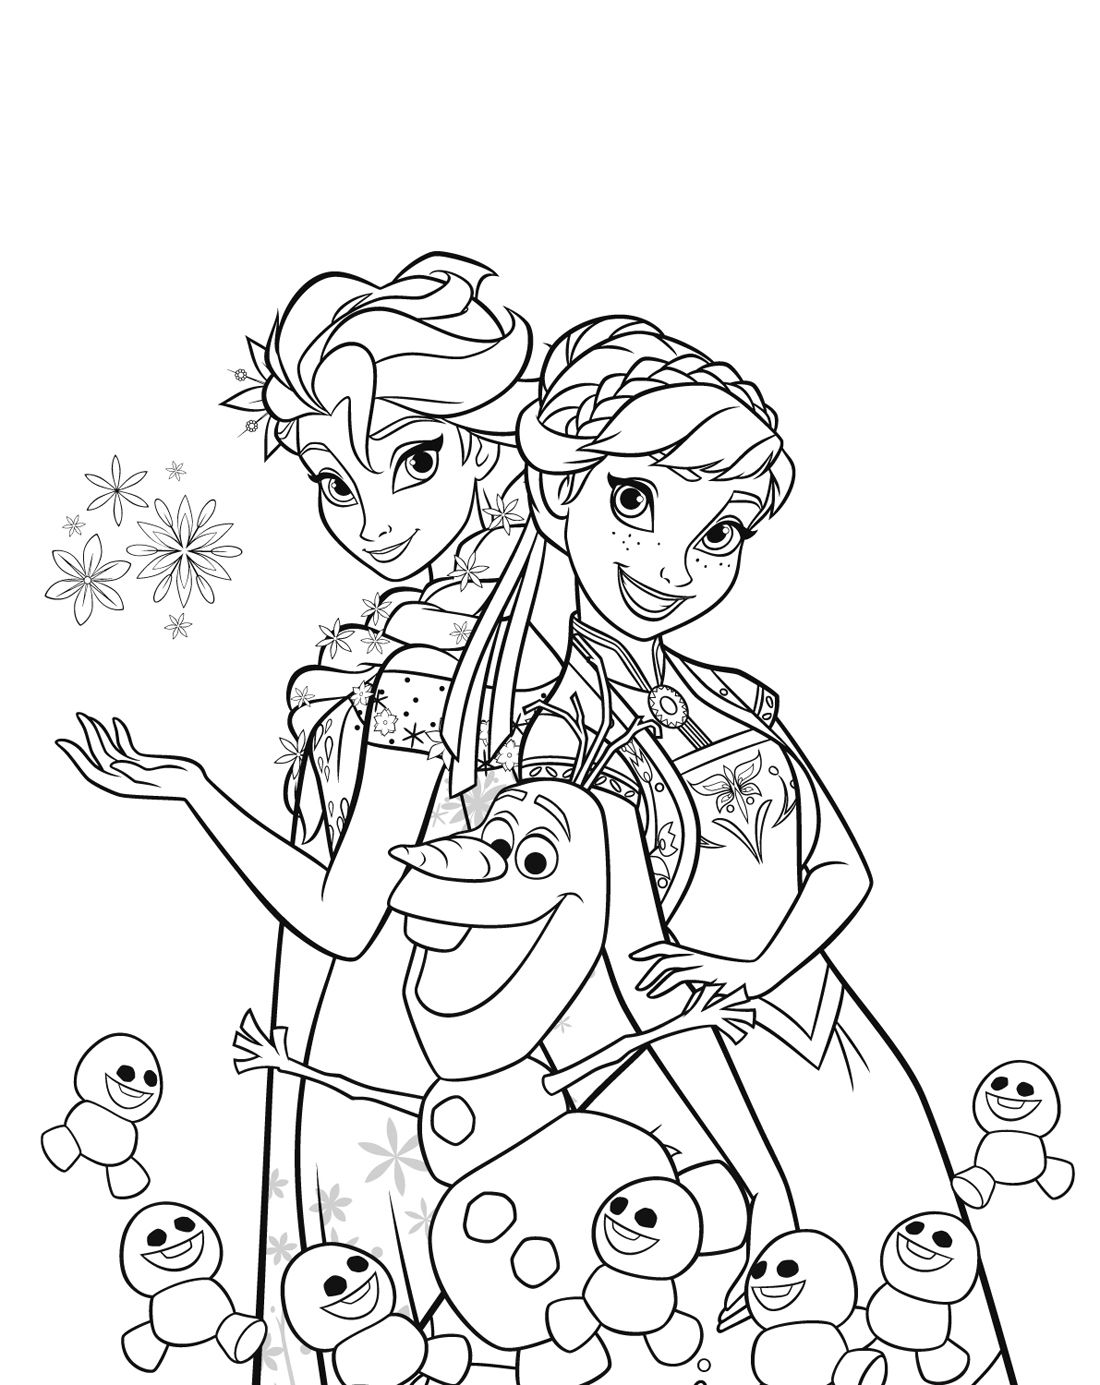 71 Disney Anime Coloring Pages Pictures